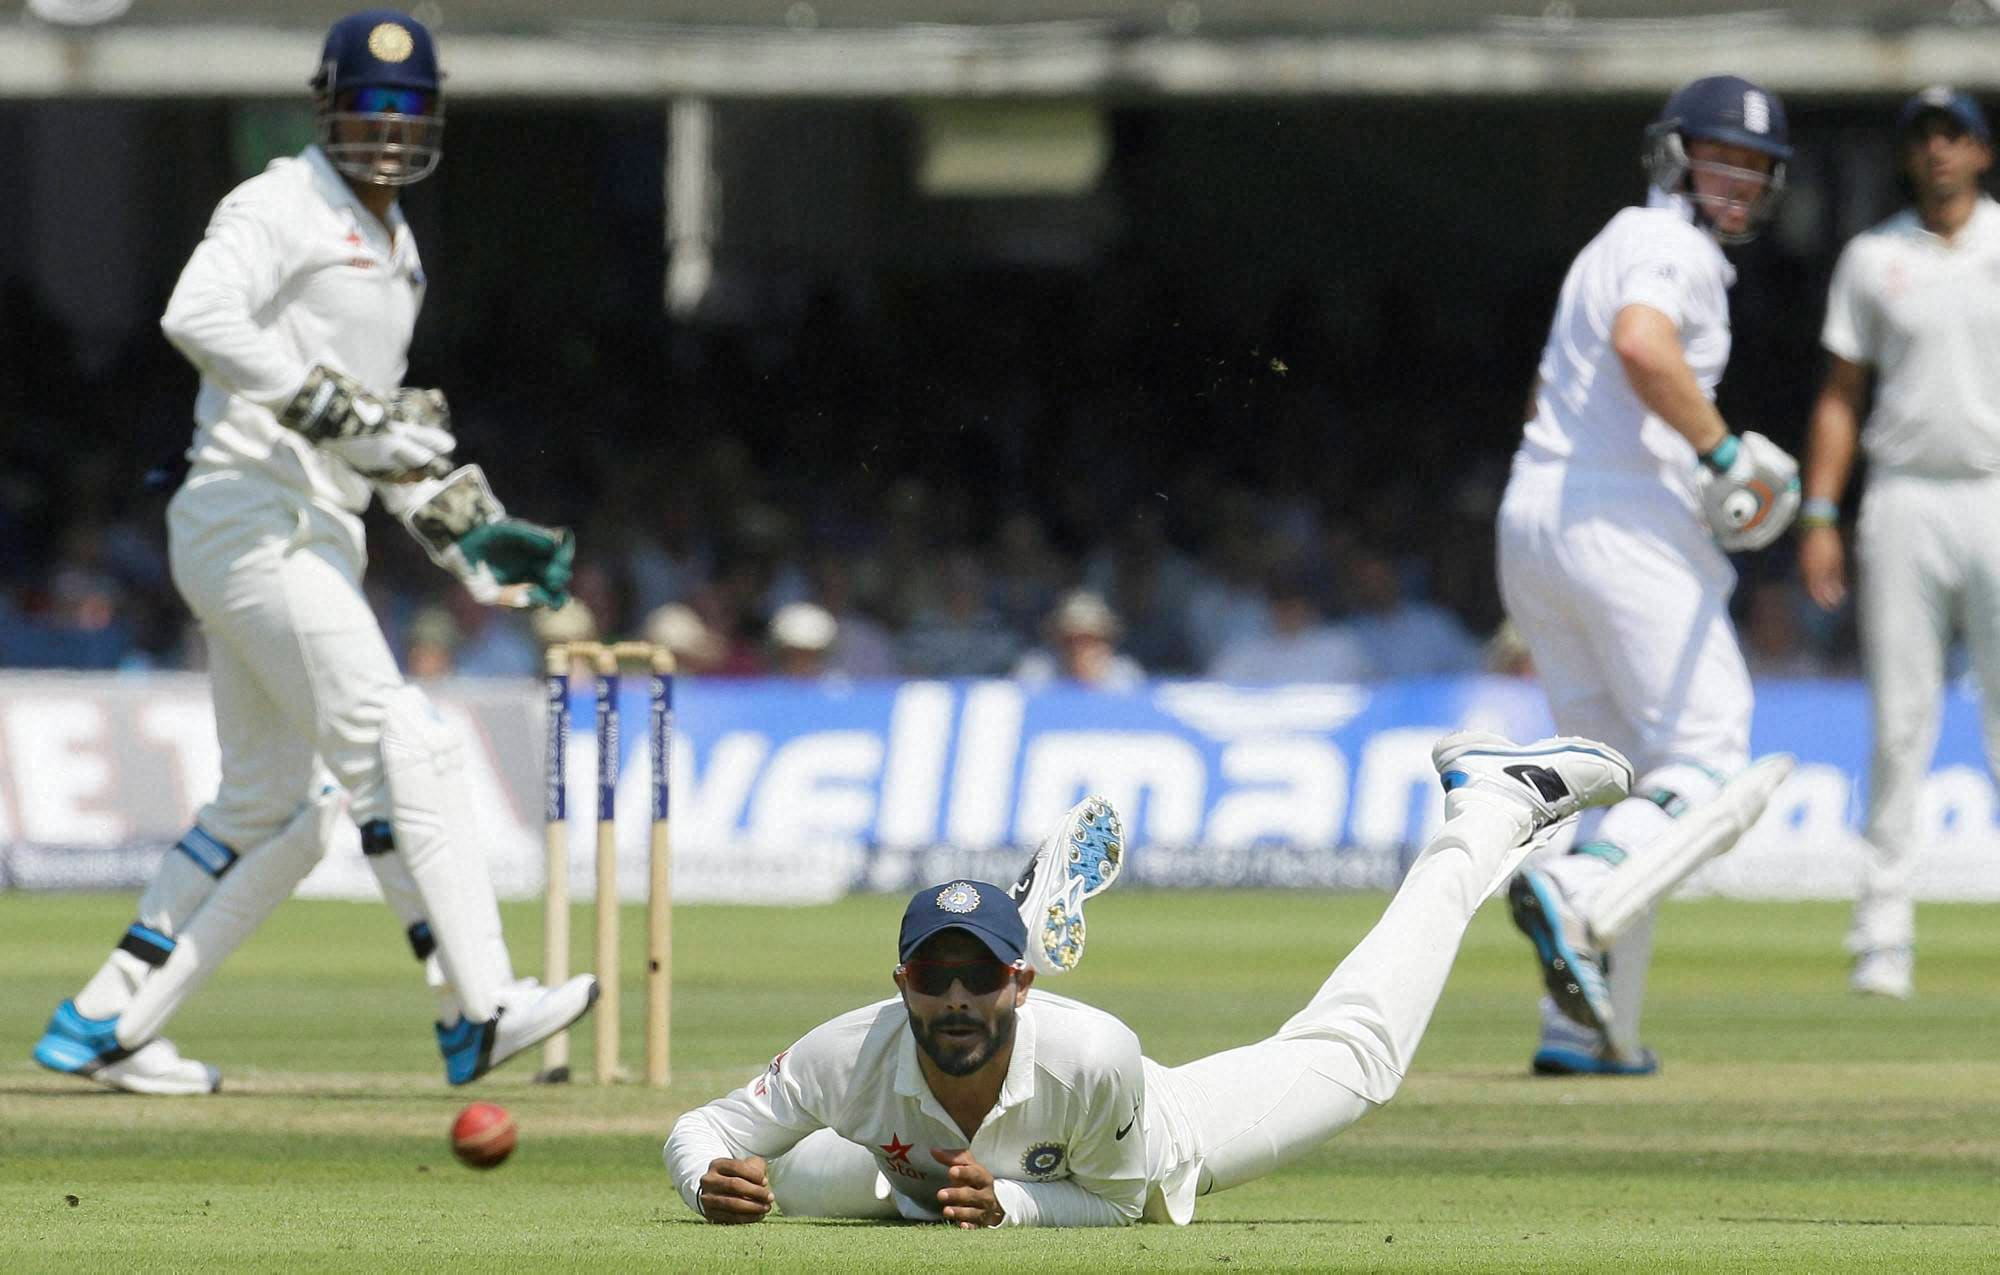 India's, Ravindra Jadeja, fails, stop ball,England's, Ian Bell, India's, Bhuvneshwar Kumar, second day, second test match, England, India, Lord's, cricket, London